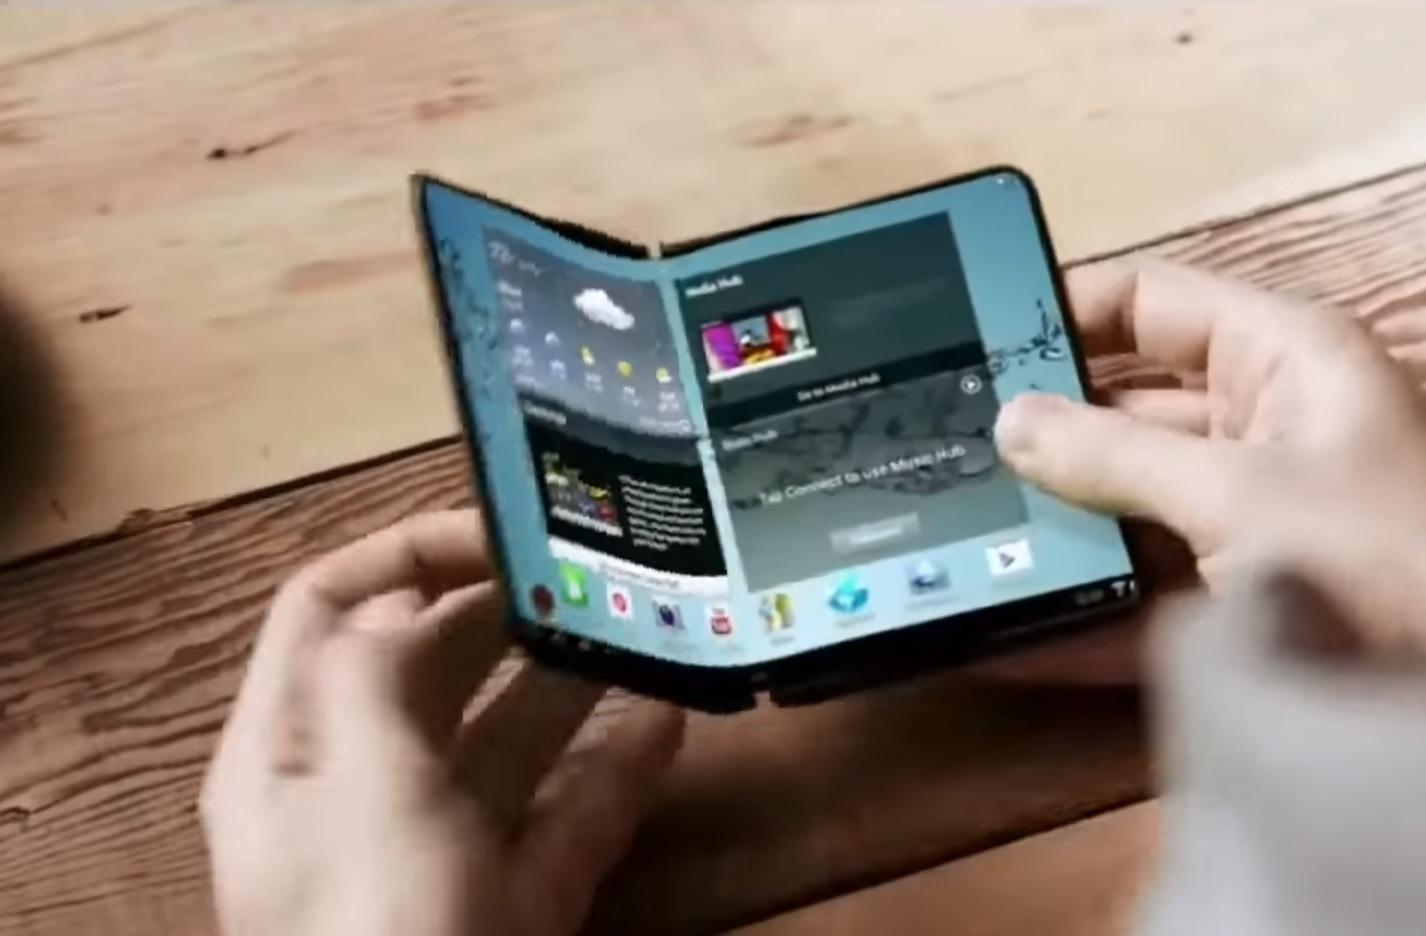 Samsung Folding Smartphone Rumour States 2019 Release Date, 5 Years After Teaser Video